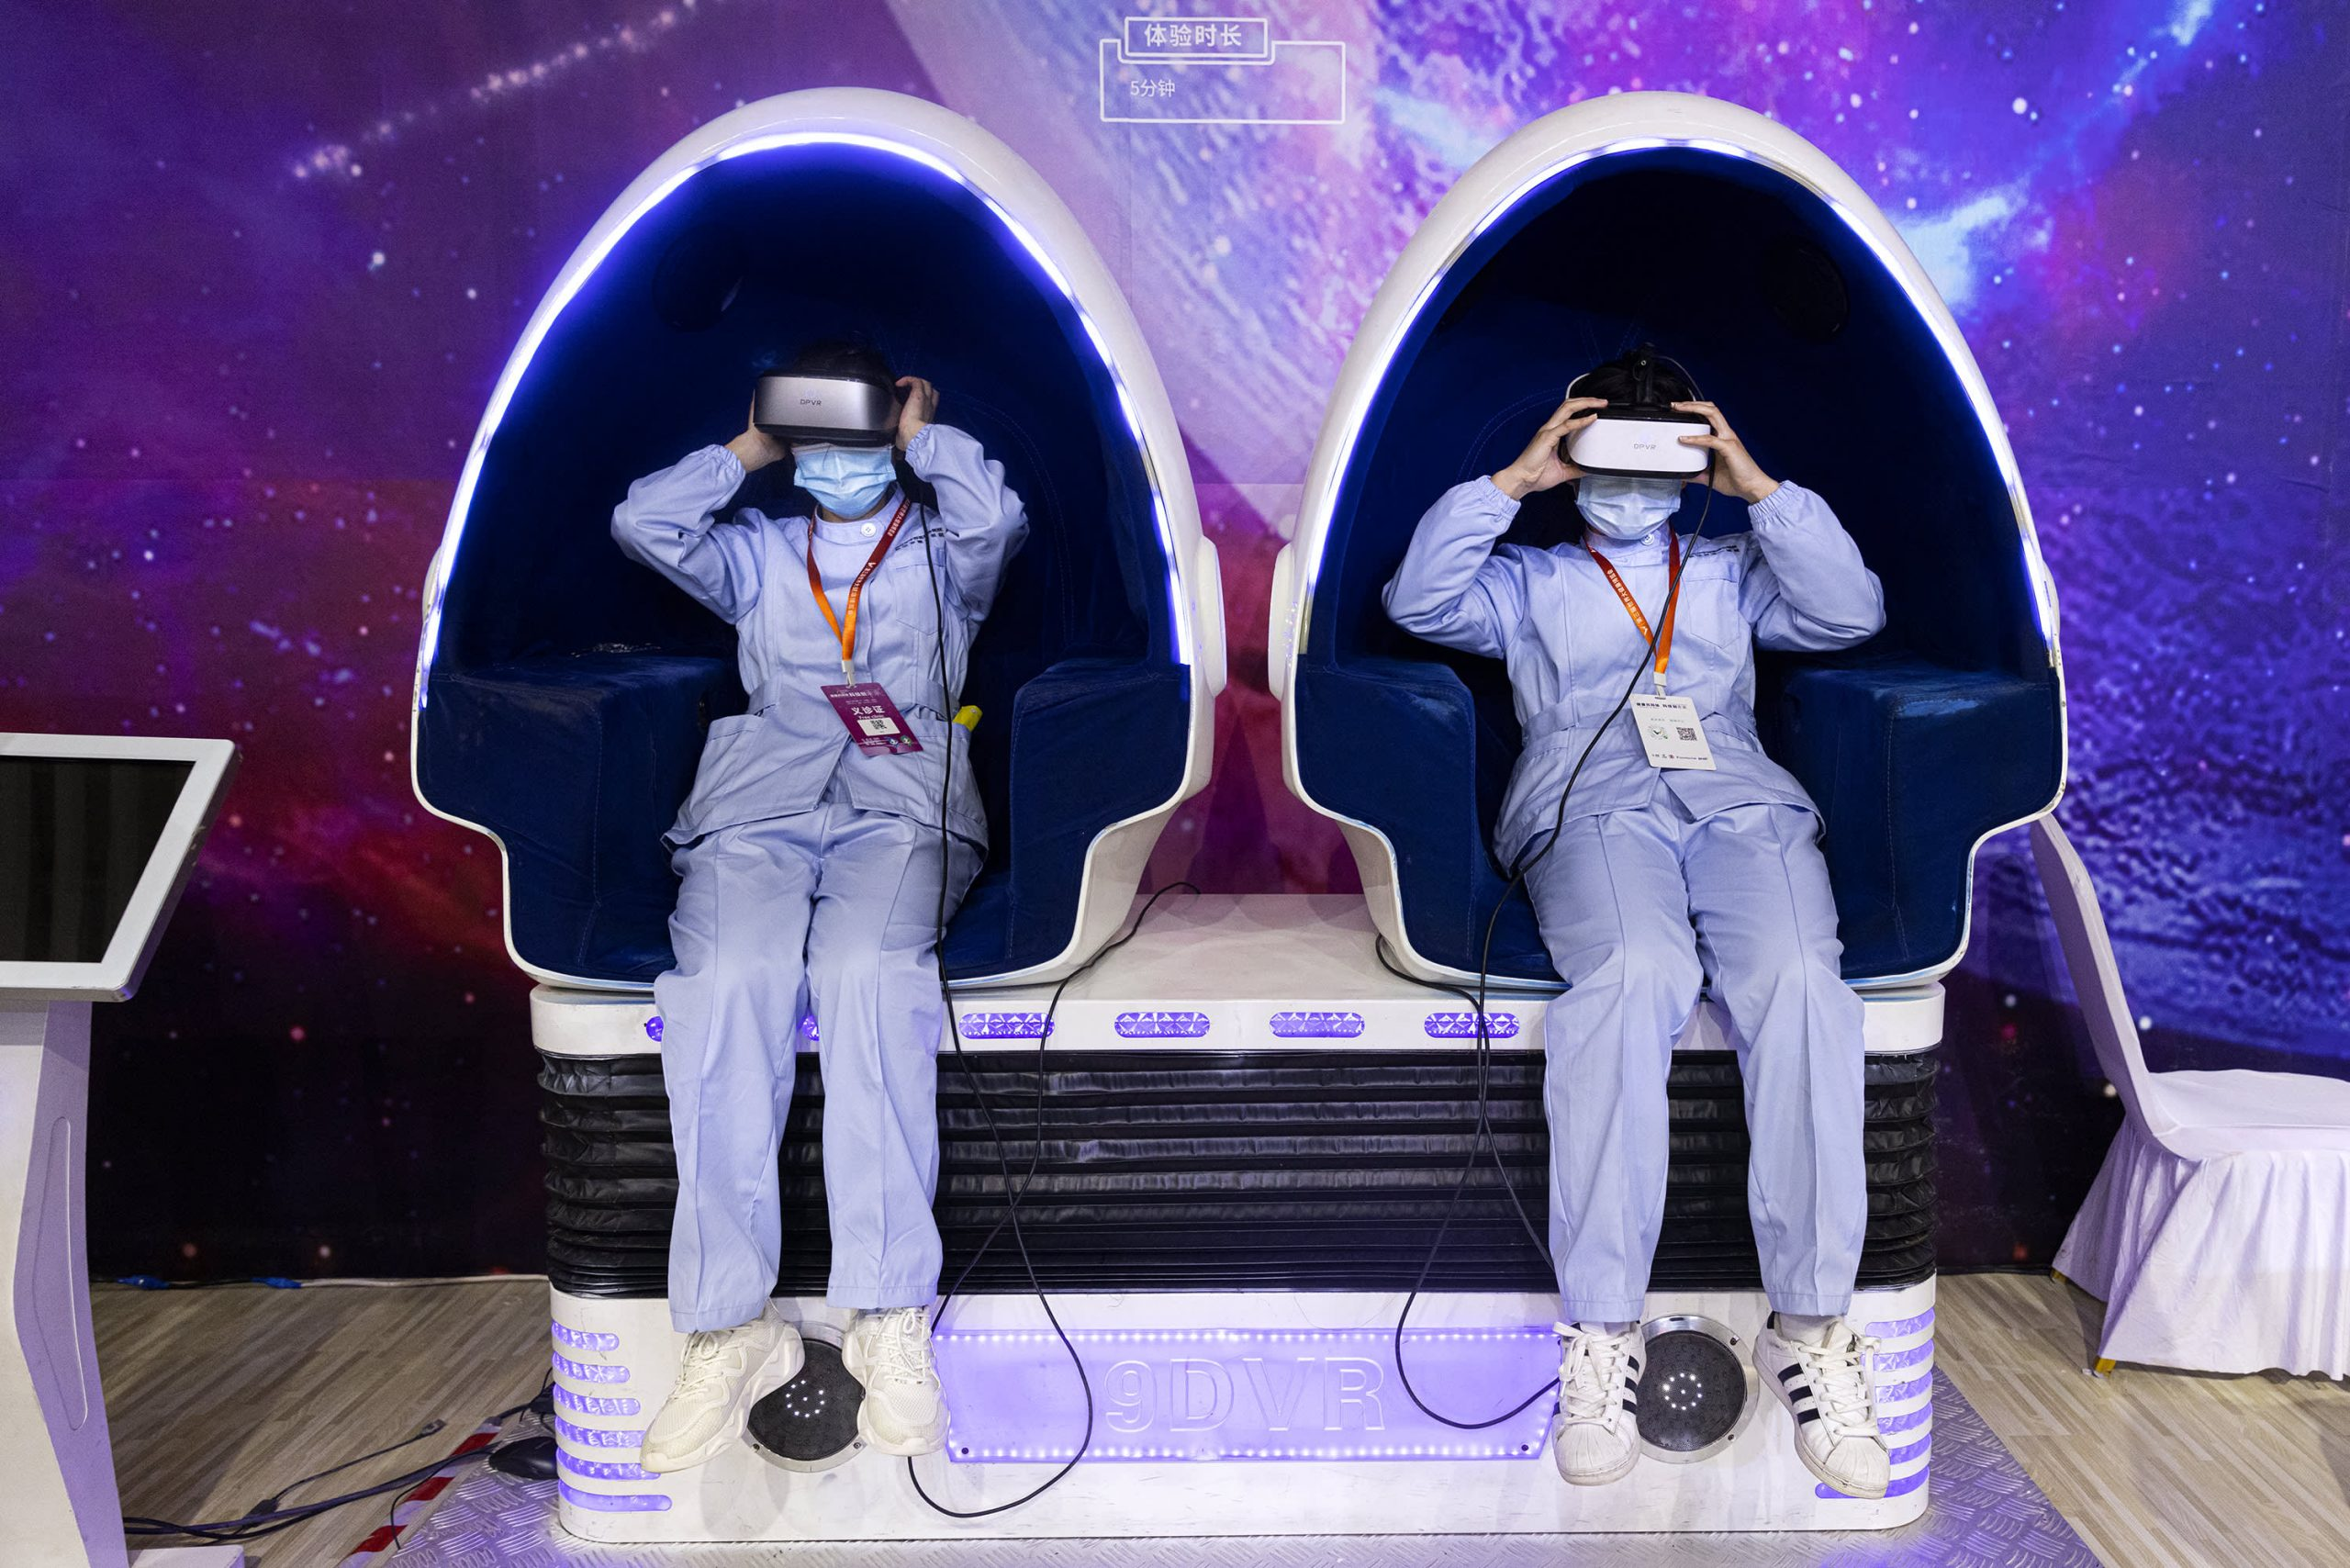 Virtual reality investments are a long-term play for businesses targeting Gen Z, says South Korea's Zepeto